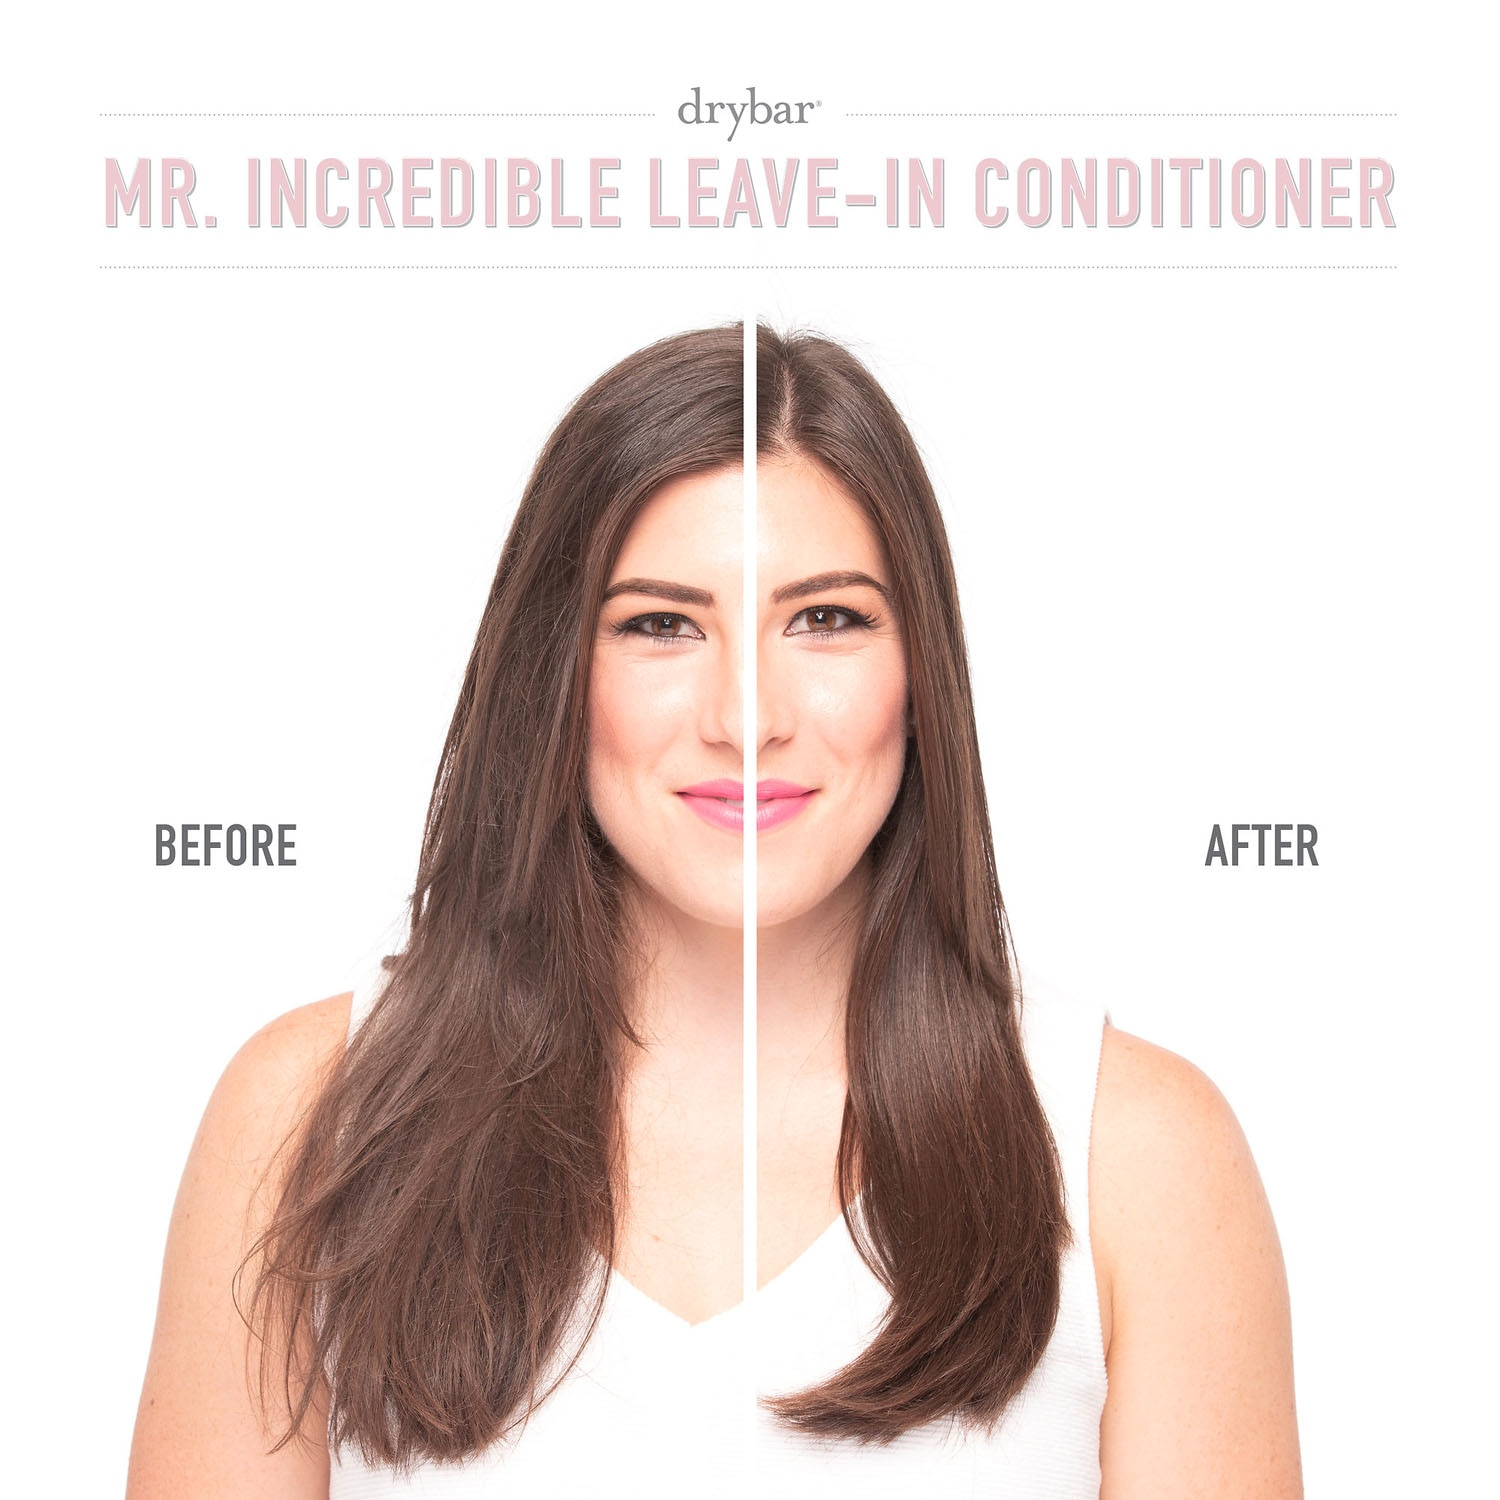 MR. INCREDIBLE THE ULTIMATE LEAVE-IN CONDITIONER (ACONDICIONADOR)